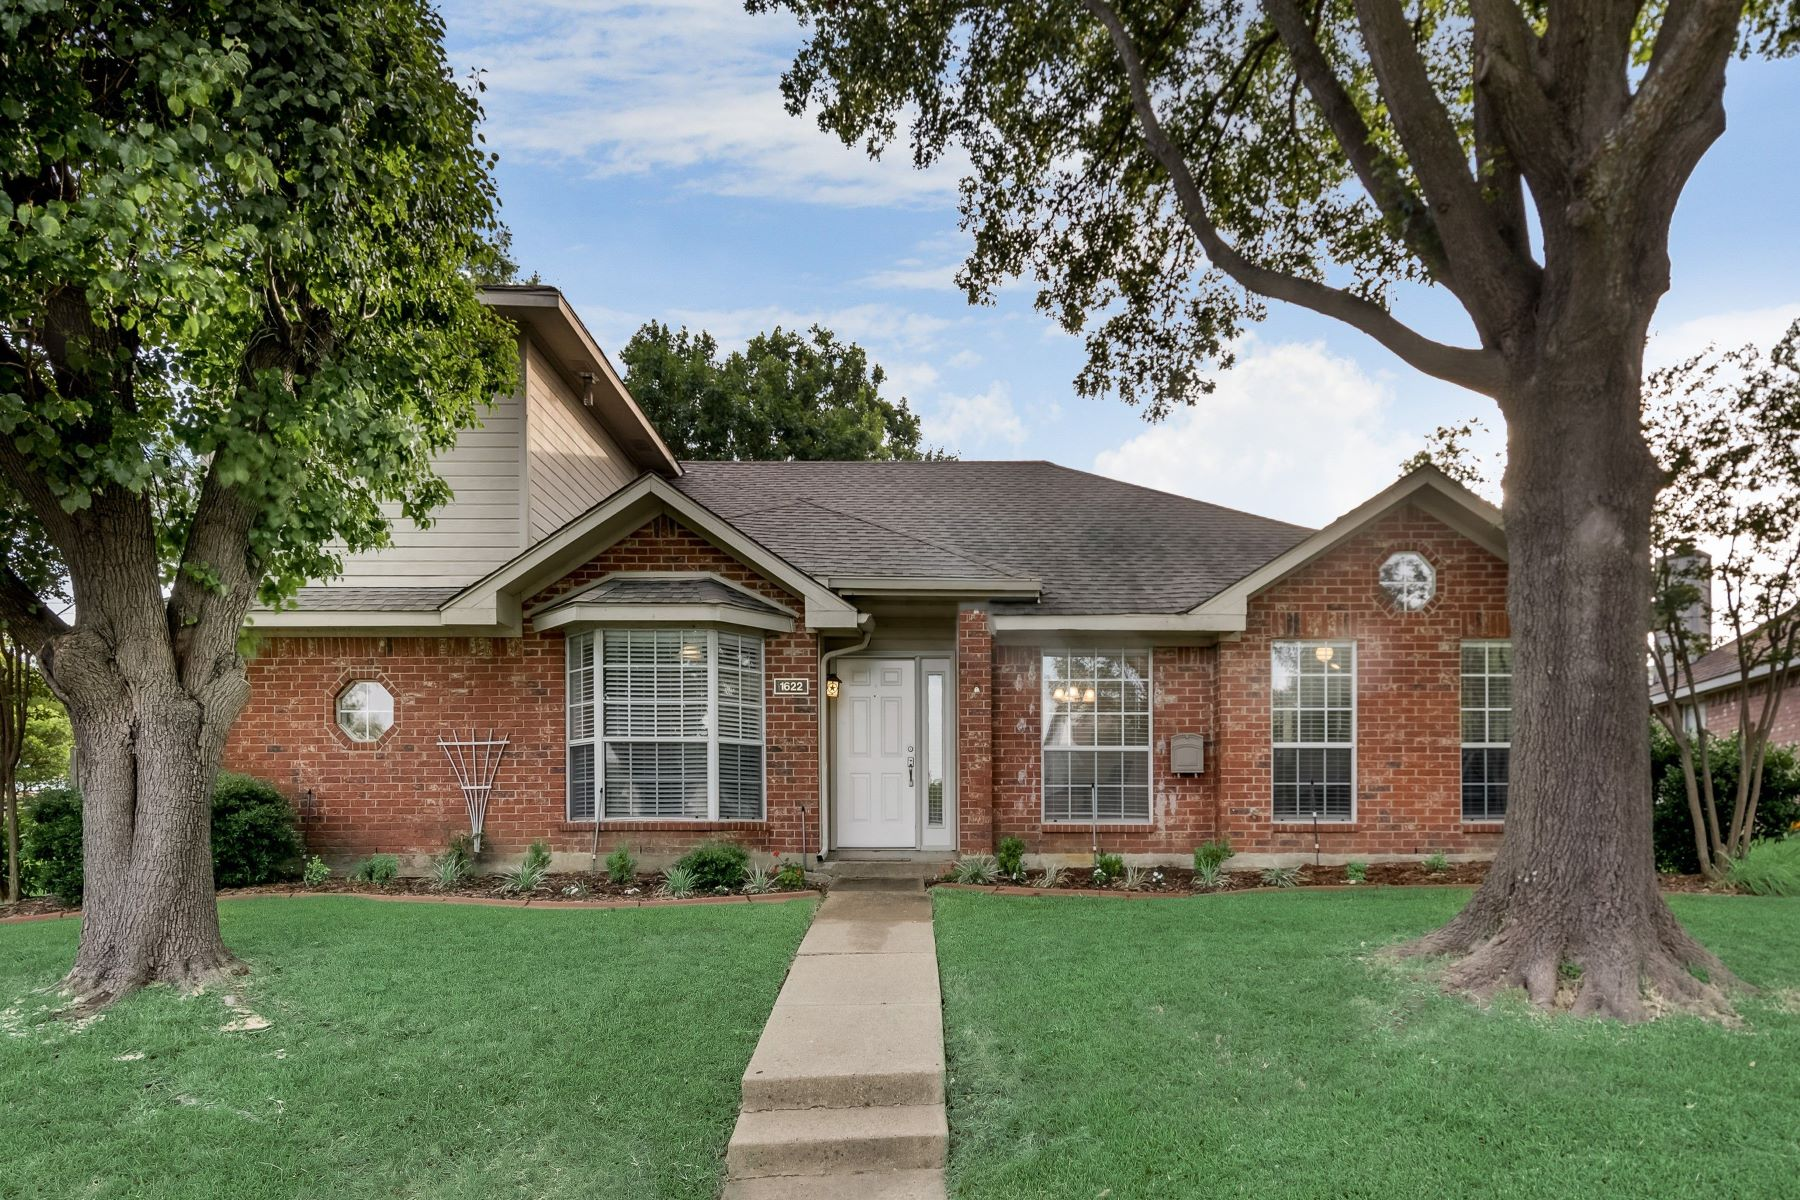 Single Family Homes for Sale at 1622 Develon Drive, Mesquite, TX, 75149 1622 Develon Drive Mesquite, Texas 75149 United States